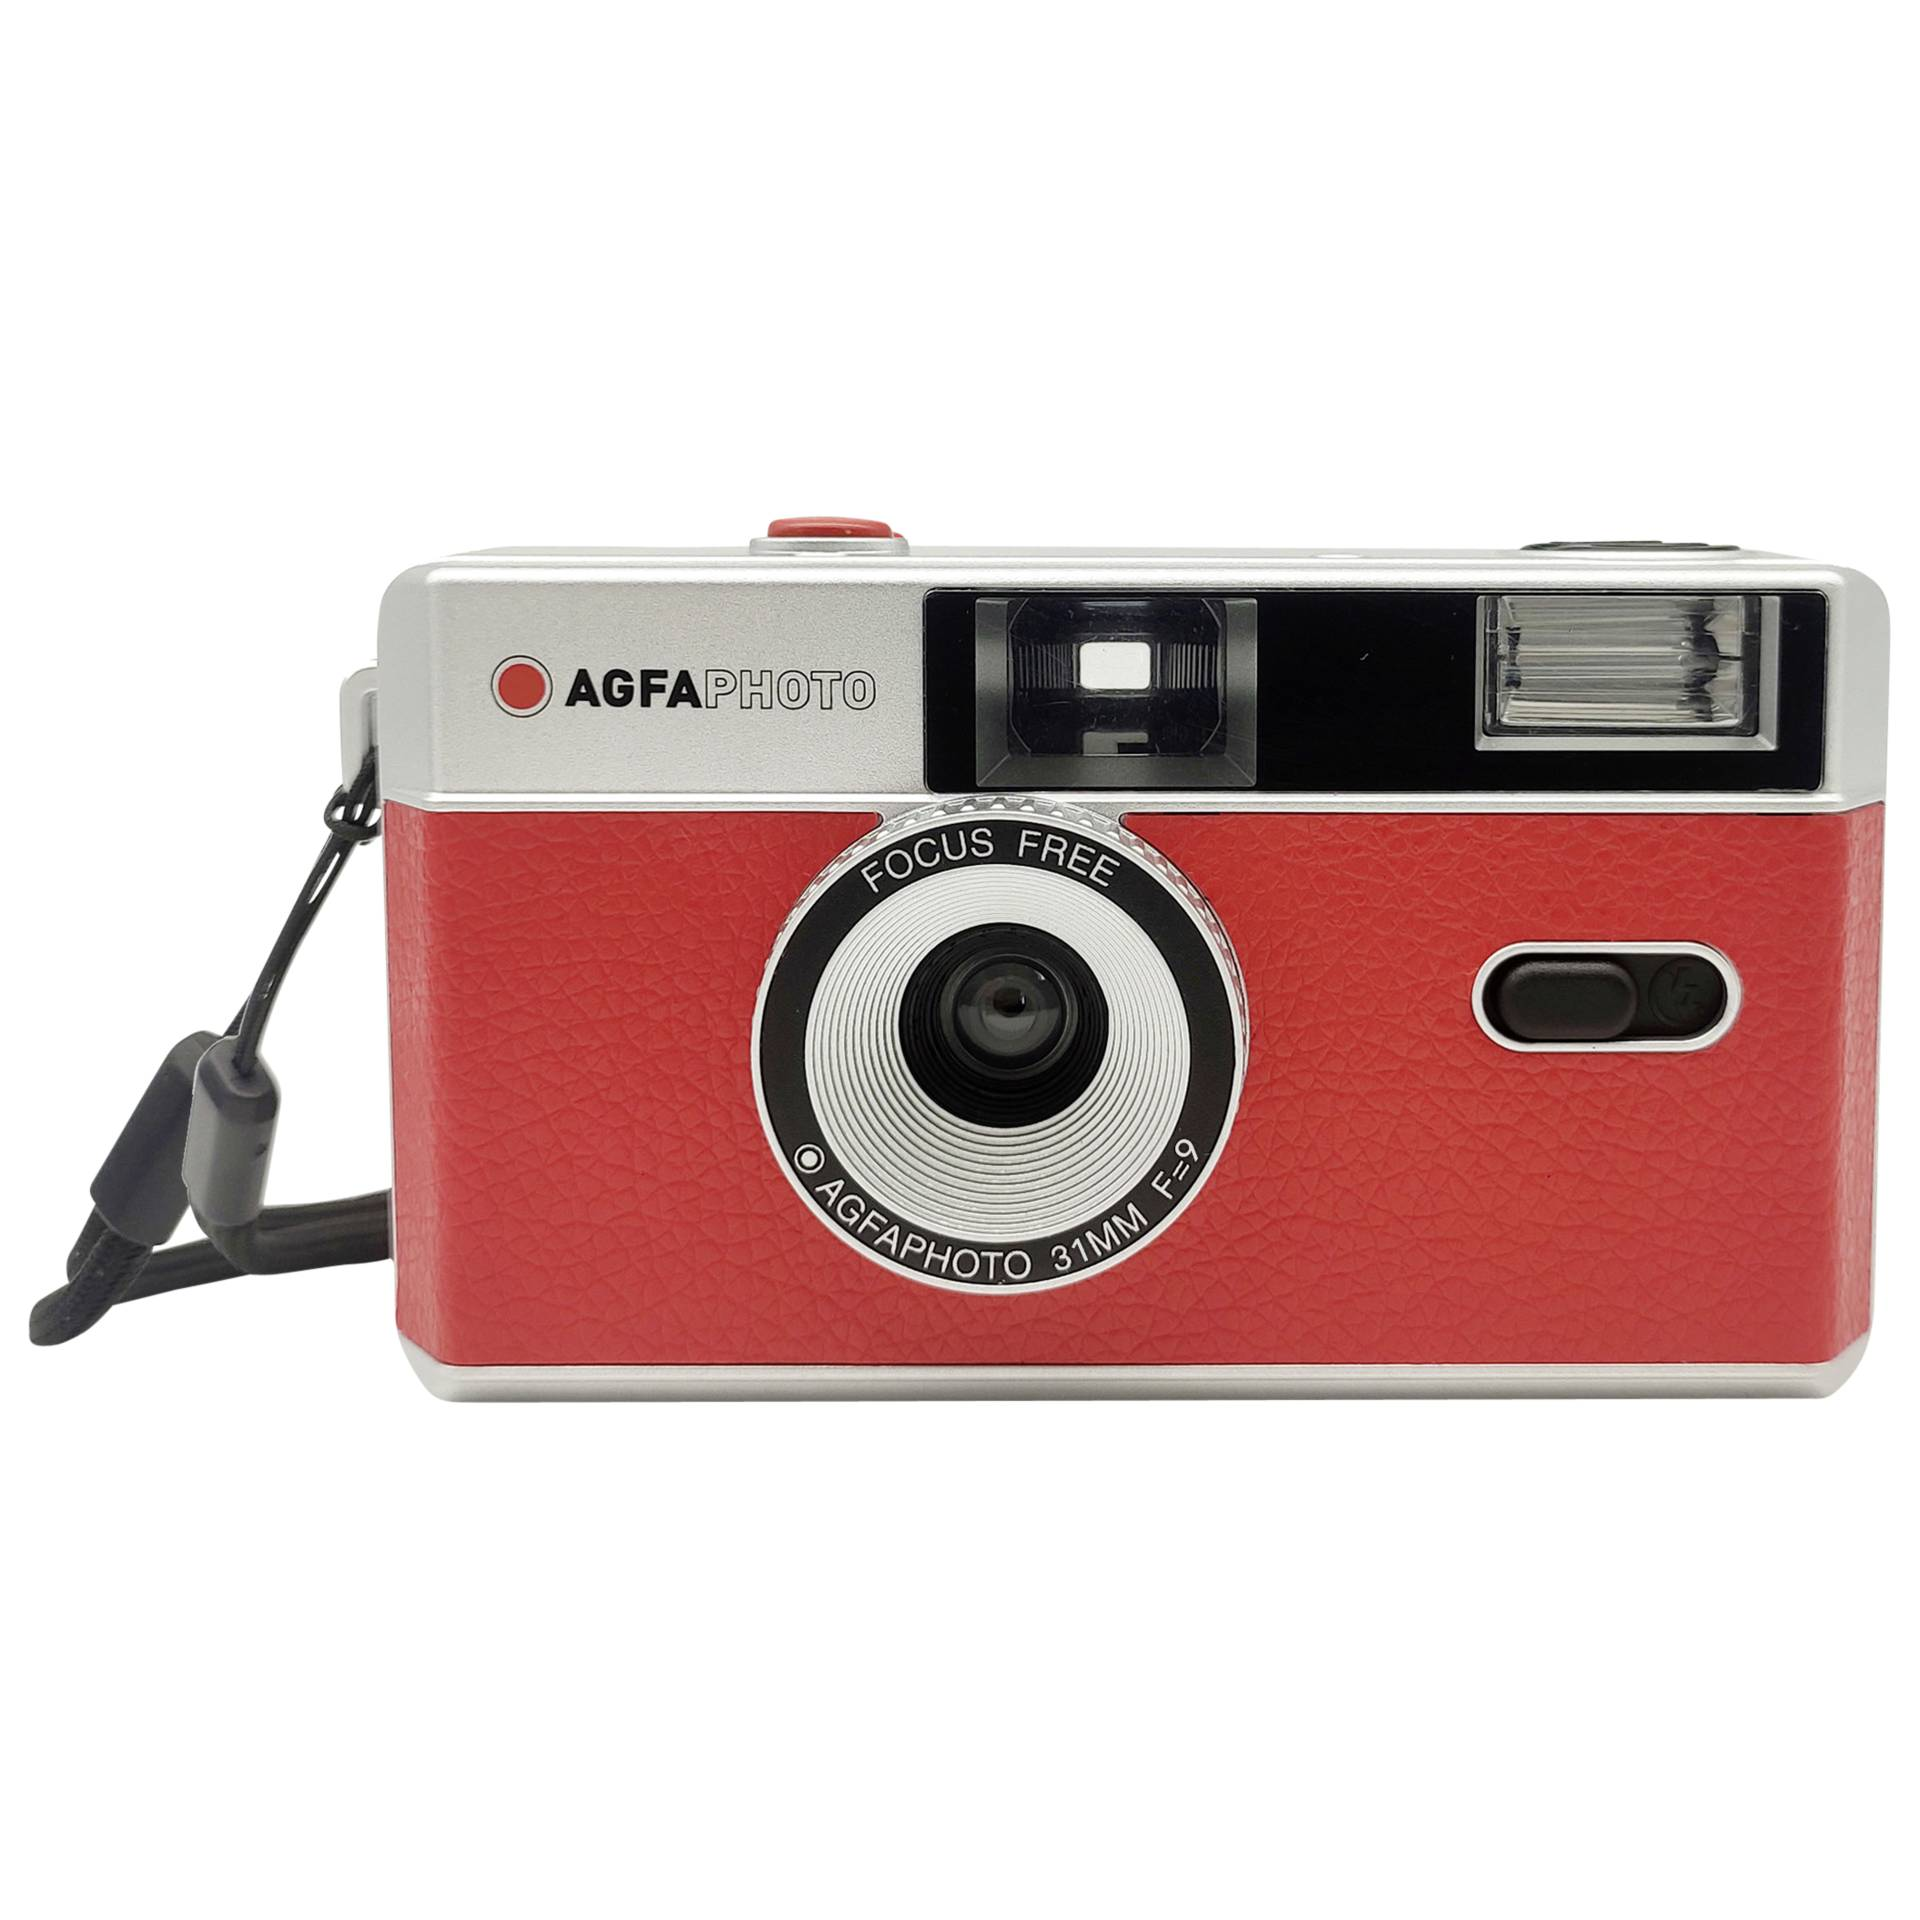 Agfaphoto Reusable Photo Camera 35mm Red